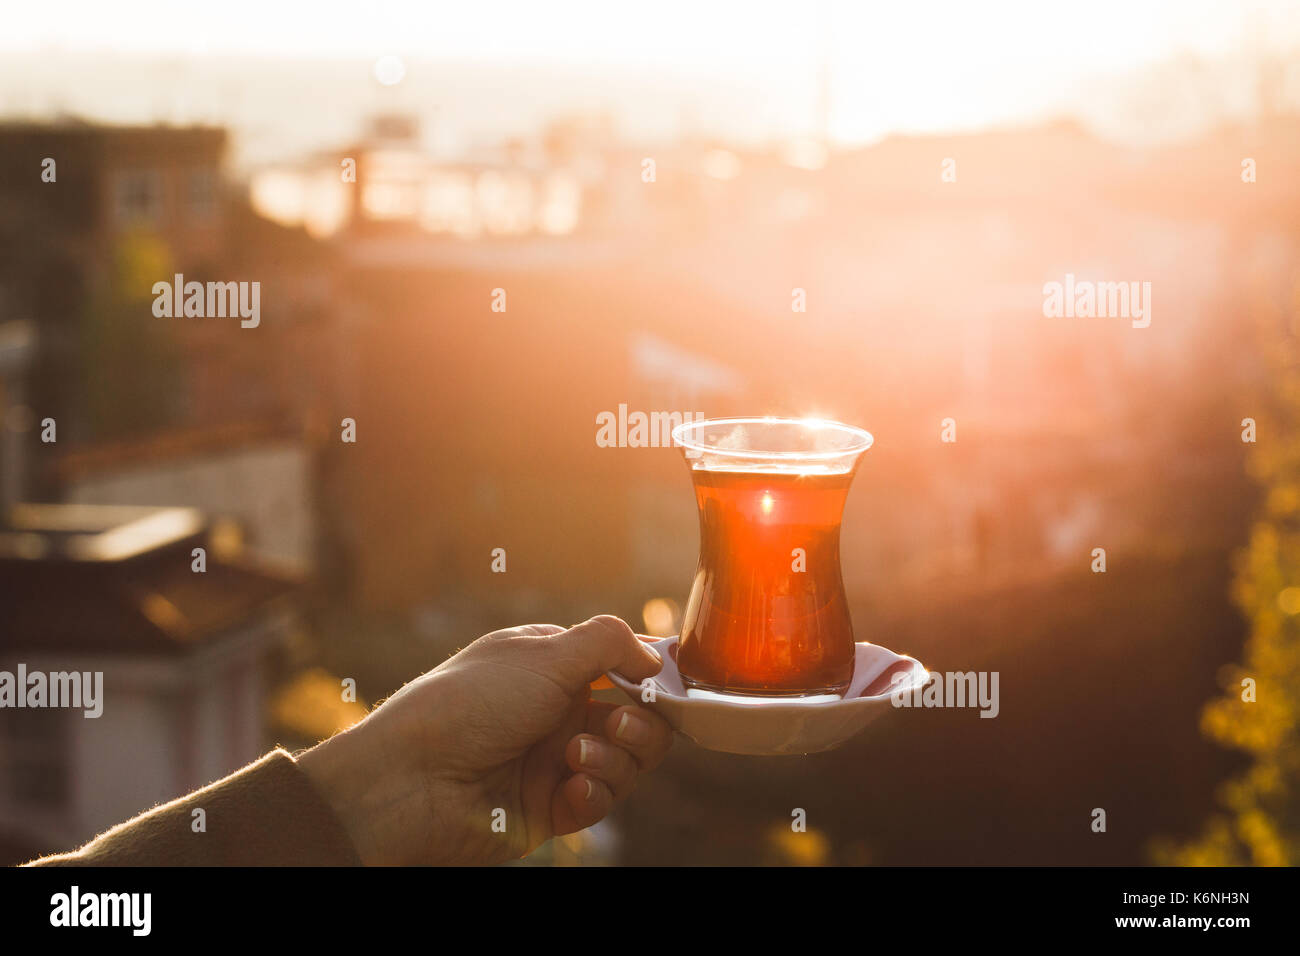 Hand holding a cup of traditional Turkish tea illuminated and transparent by the warm evening sunlight. Sunset teatime - Stock Image